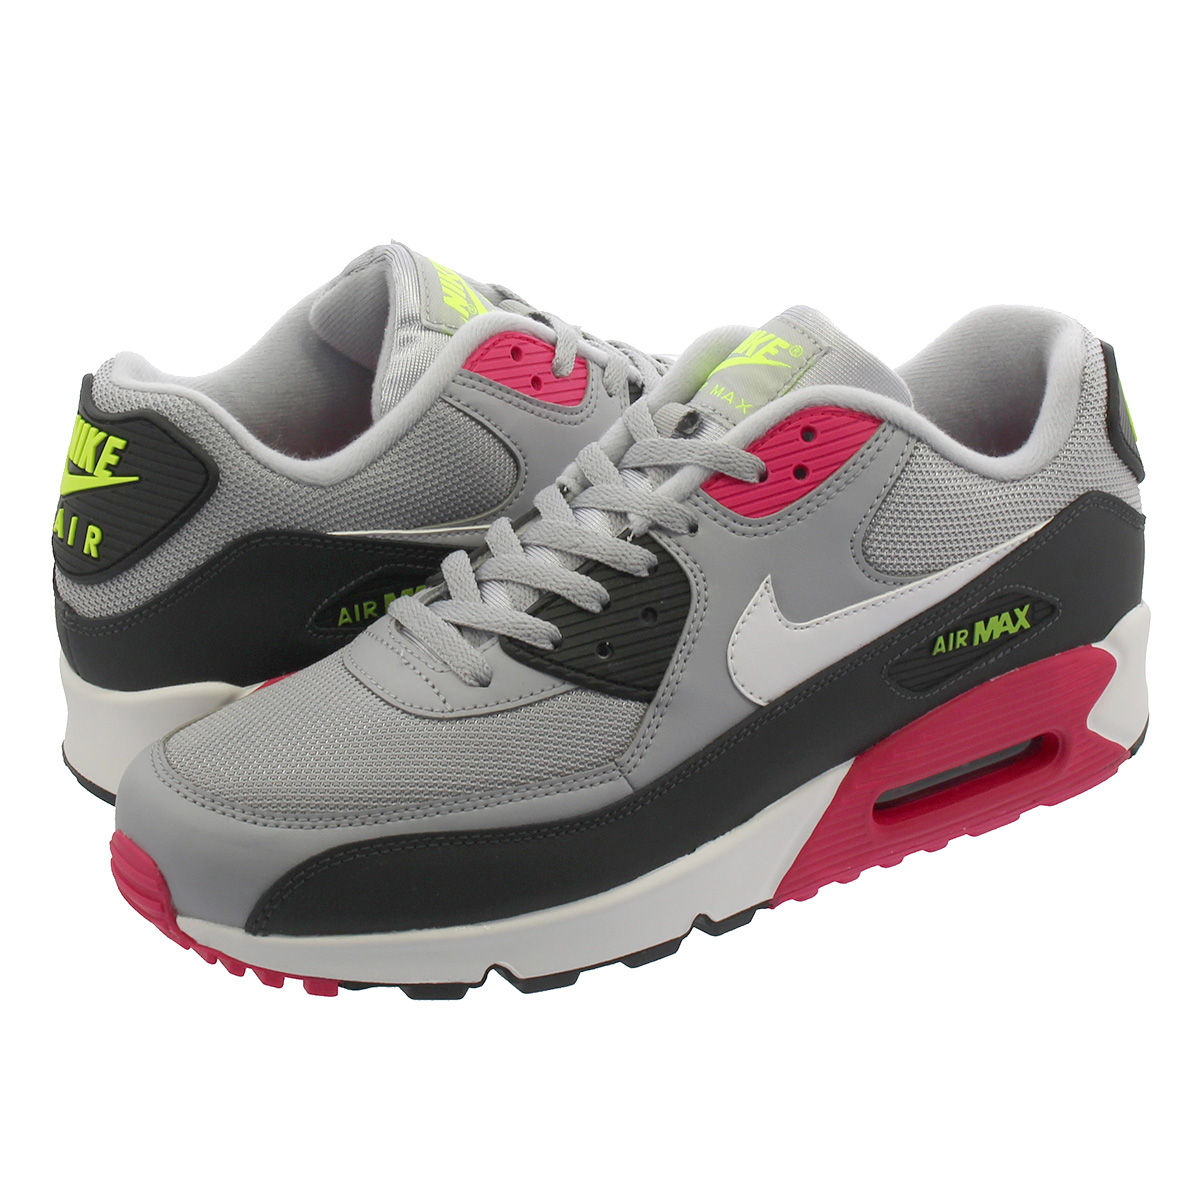 new product 6d30a 77cda NIKE AIR MAX 90 ESSENTIAL Kie Ney AMAX 90 essential WOLF GREY/WHITE/RUSH  PINK/VOLT aj1285-020